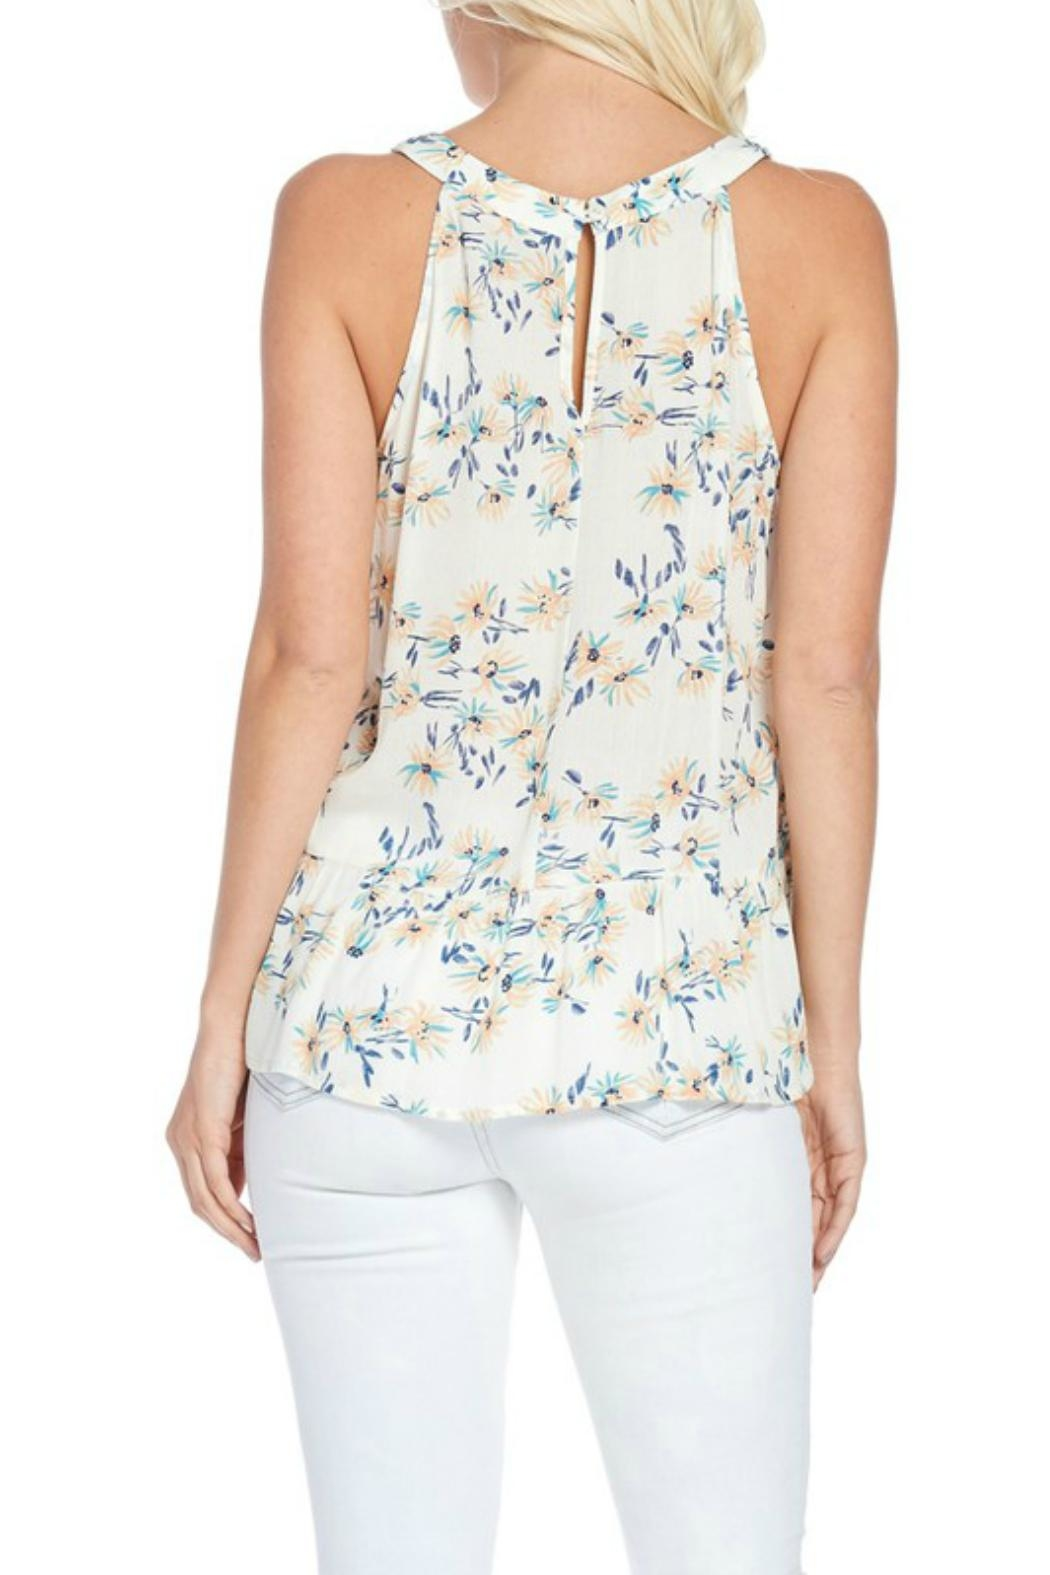 Skies Are Blue Embroidered Halter Top - Back Cropped Image